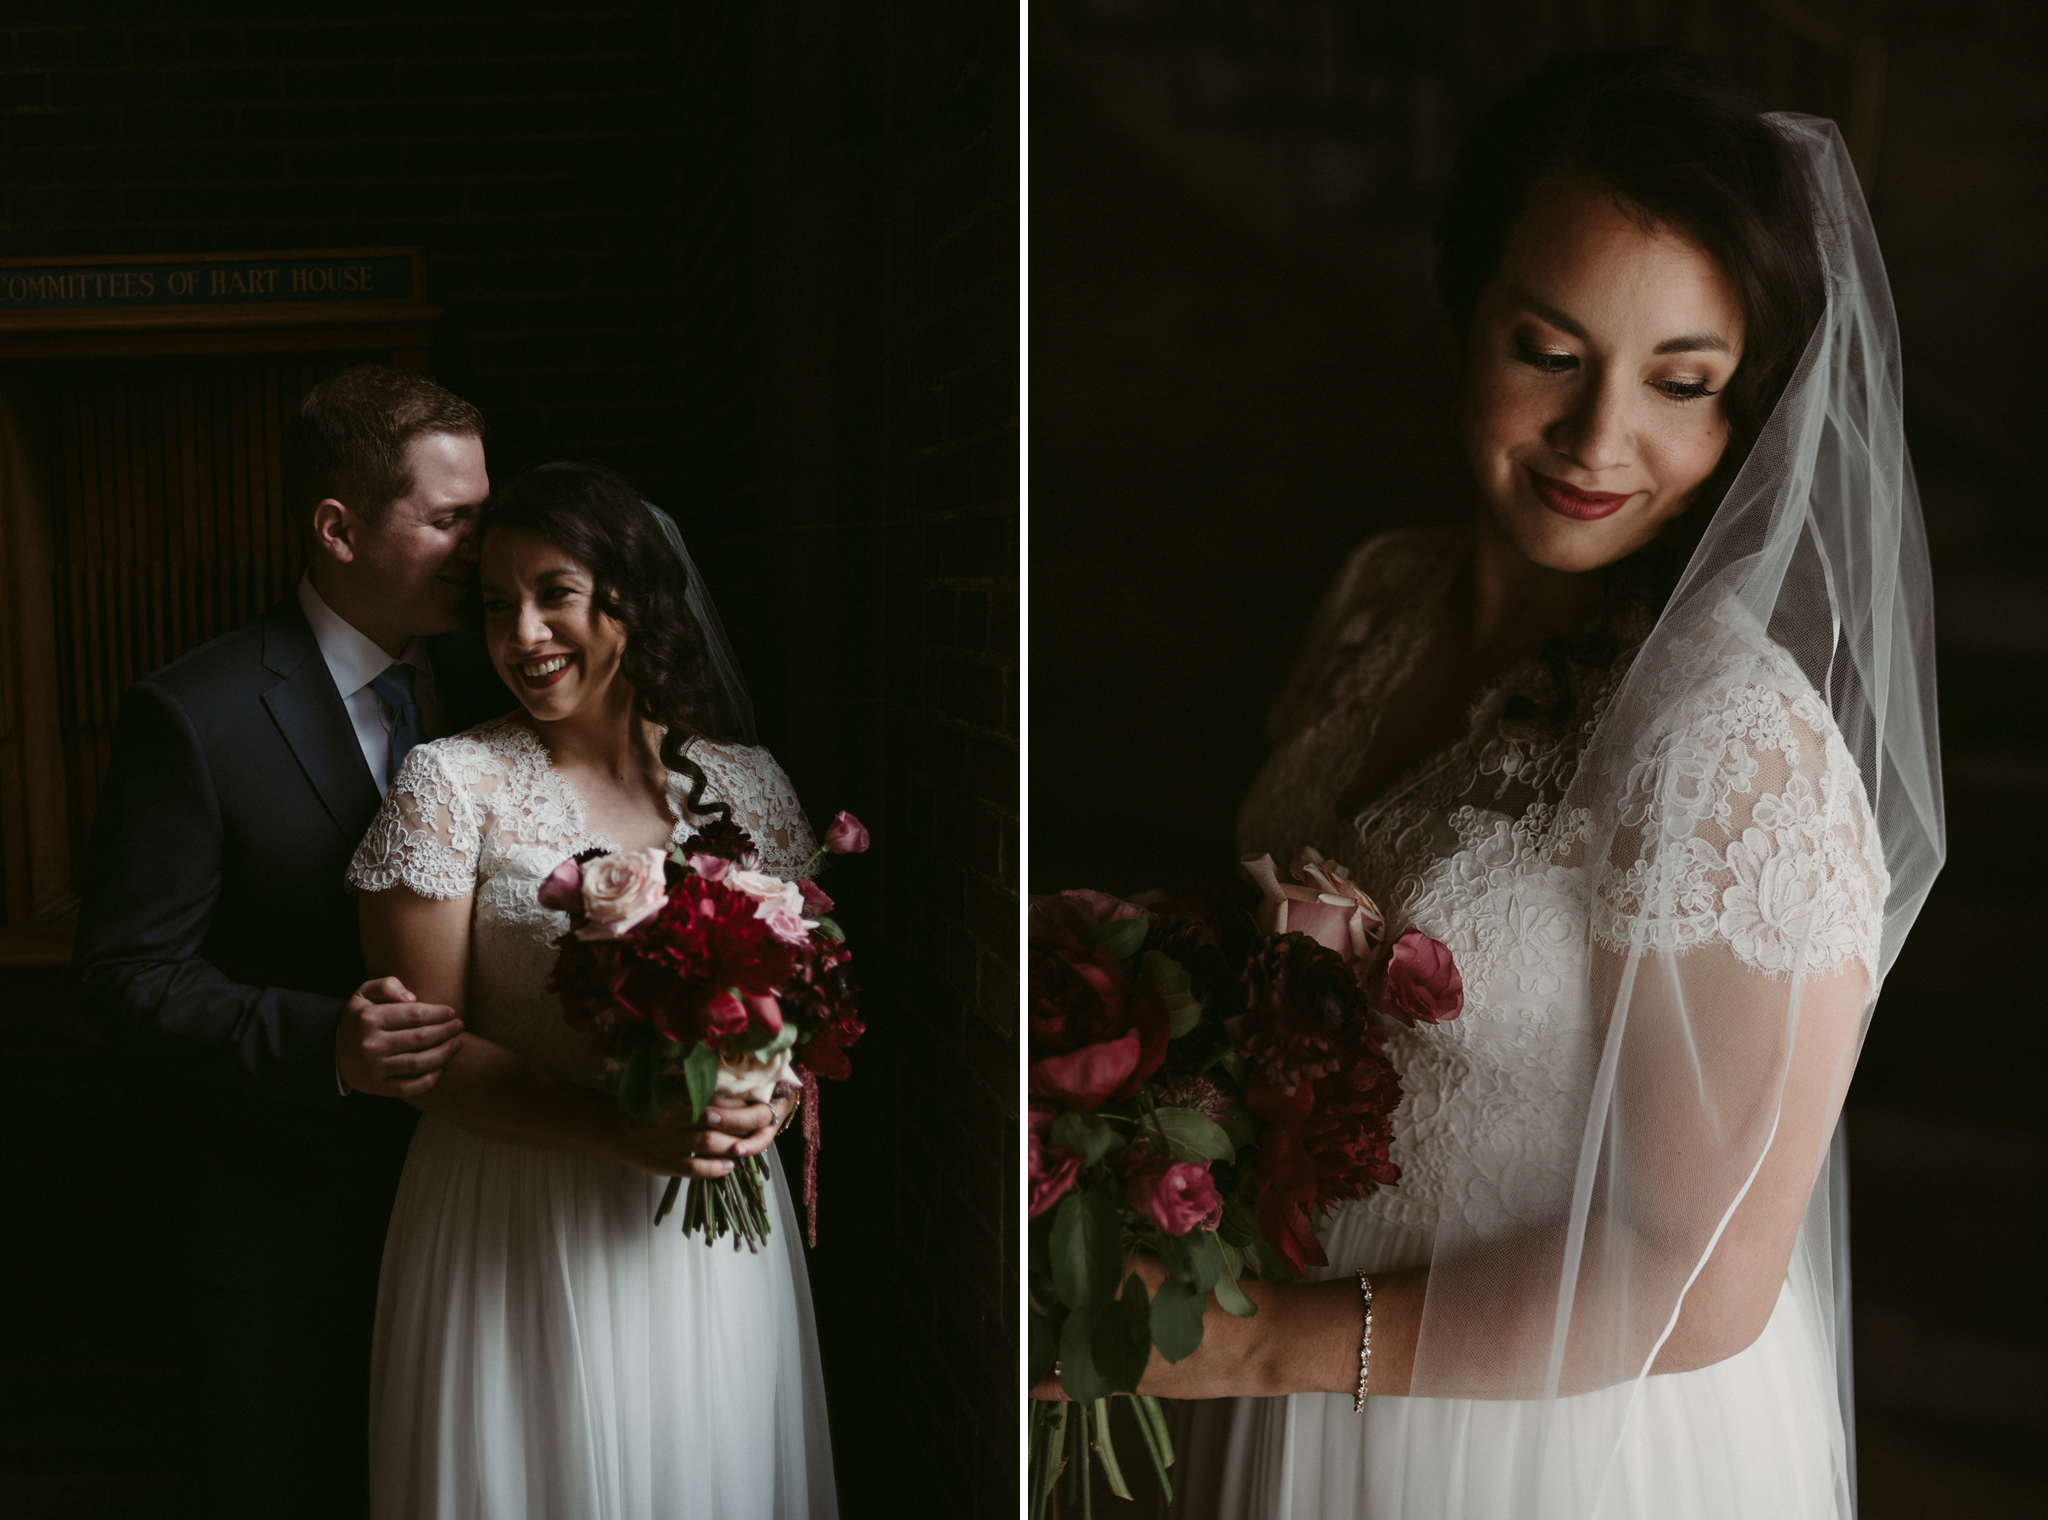 Wedding portraits inside Hart House